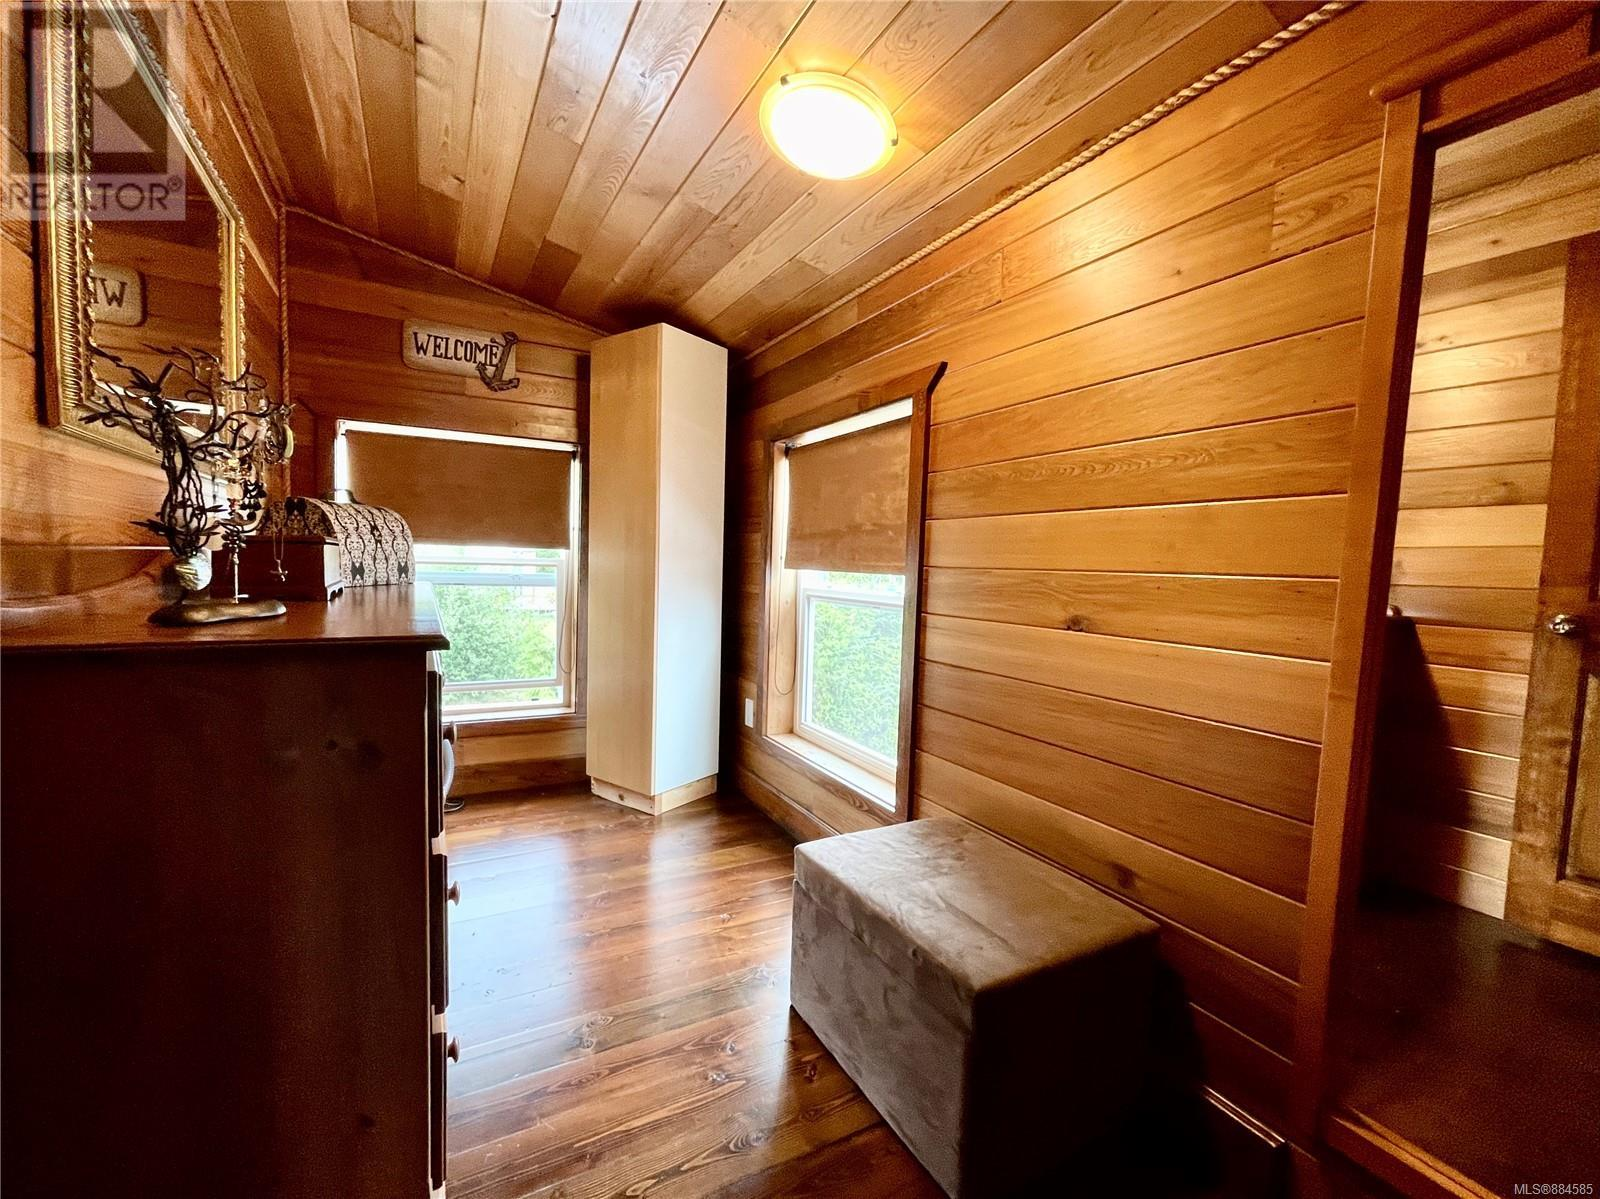 MLS® #884585 - Ucluelet House For sale Image #16